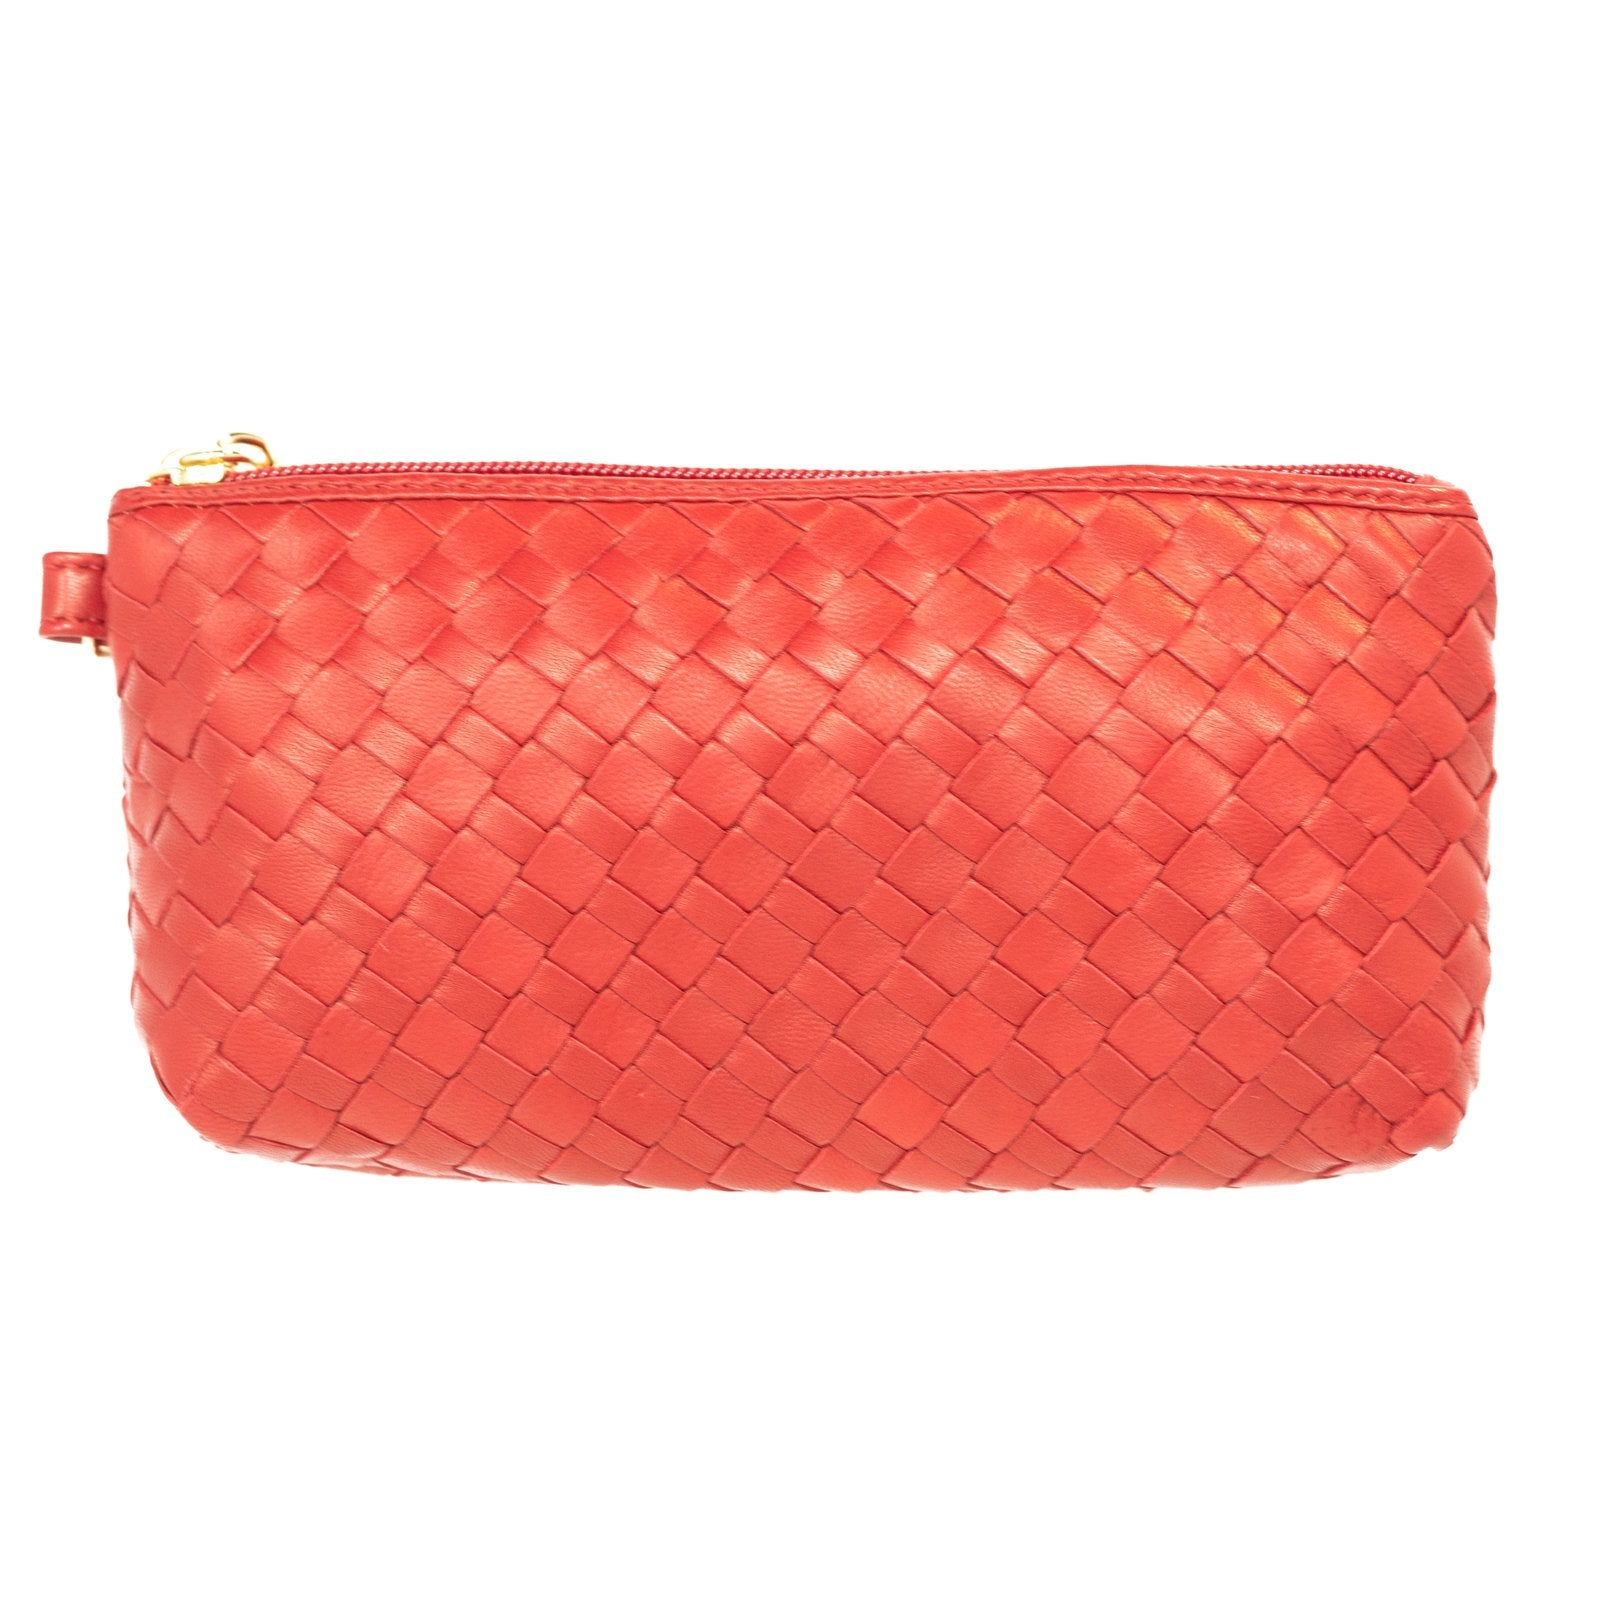 Women Intrecciato Leather Small Soft Pouch Red Intreccio Quadro - Jennifer Tattanelli